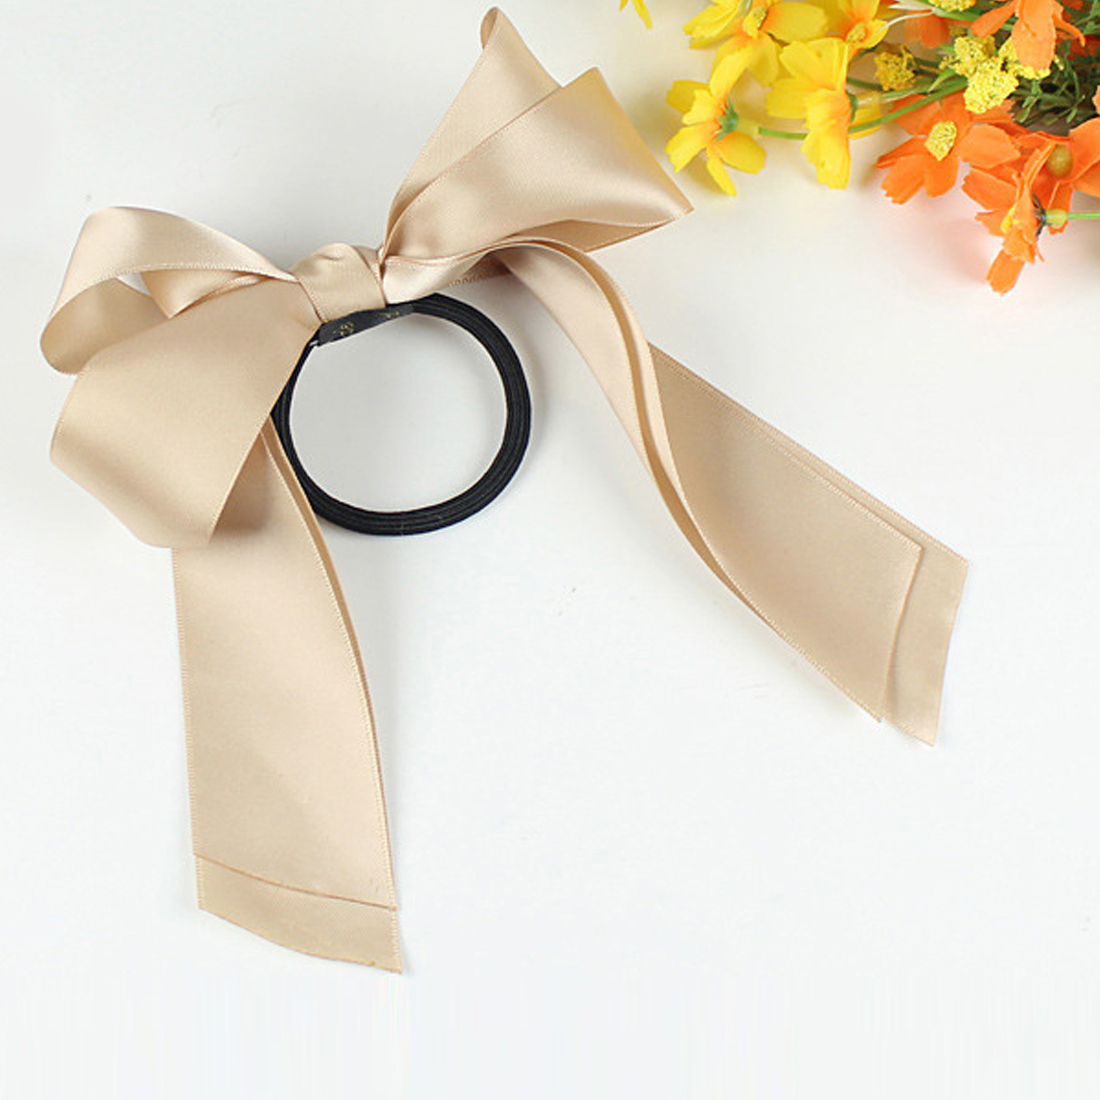 1pcs Women Rubber Bands Tiara Satin Ribbon Bow Hair Band Rope Scrunchie Ponytail Holder Gum for Accessories Elastic